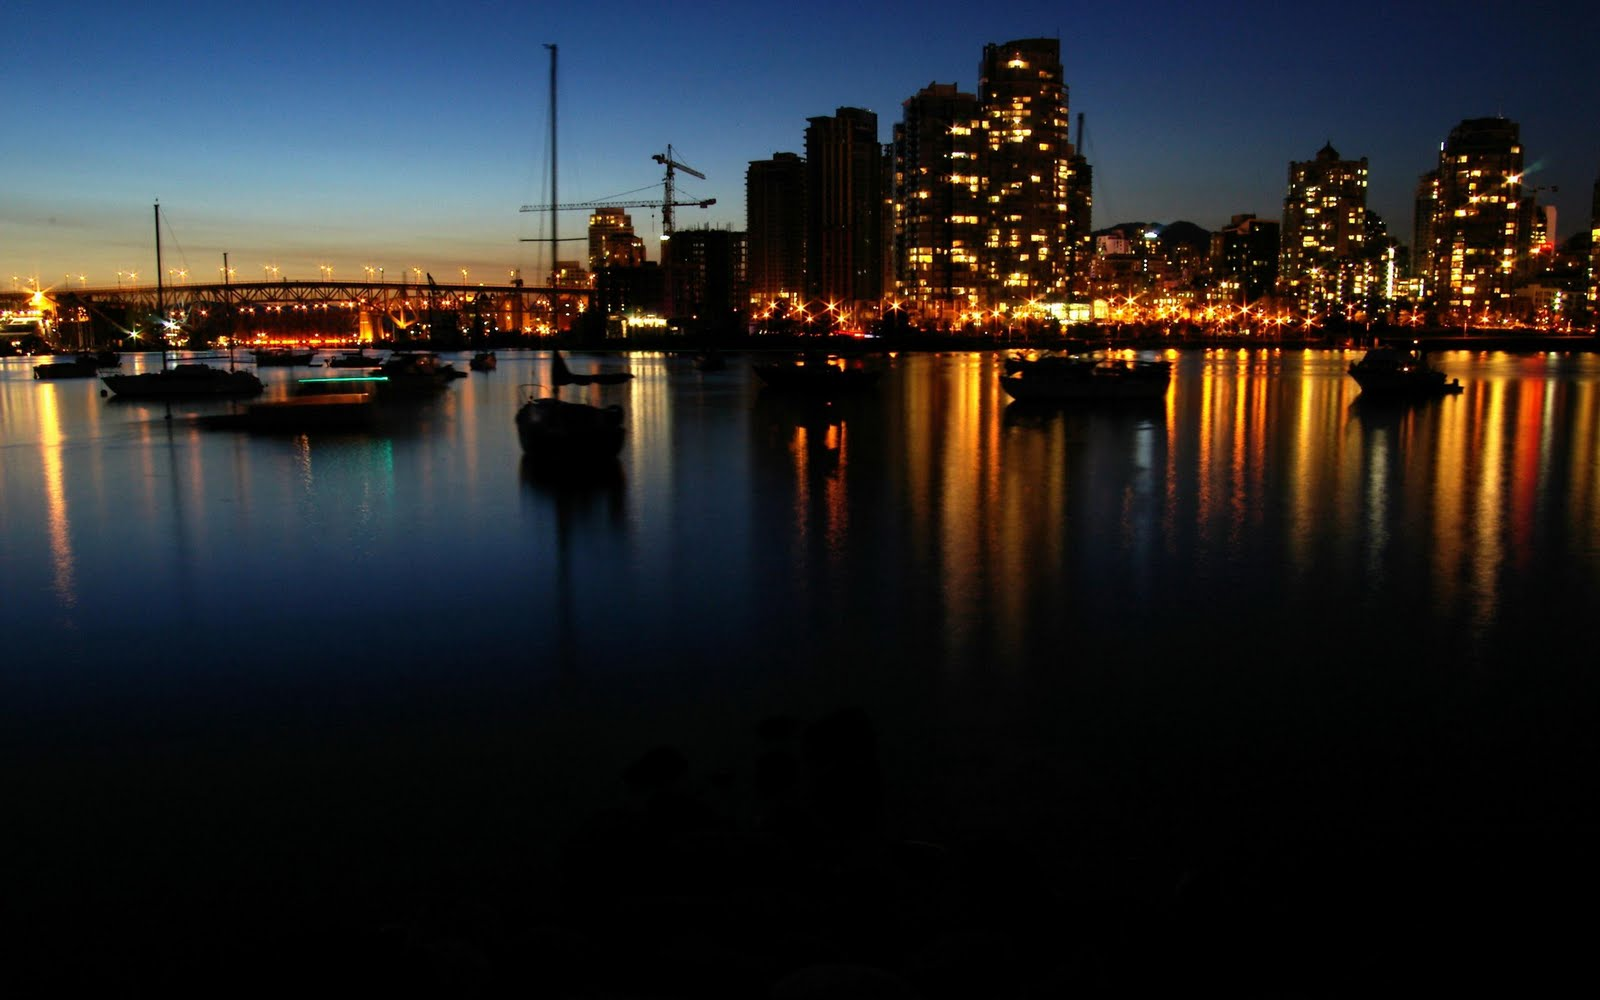 Wallpaper vancouver city nights Wallpapers HD - vancouver city nights wallpapers